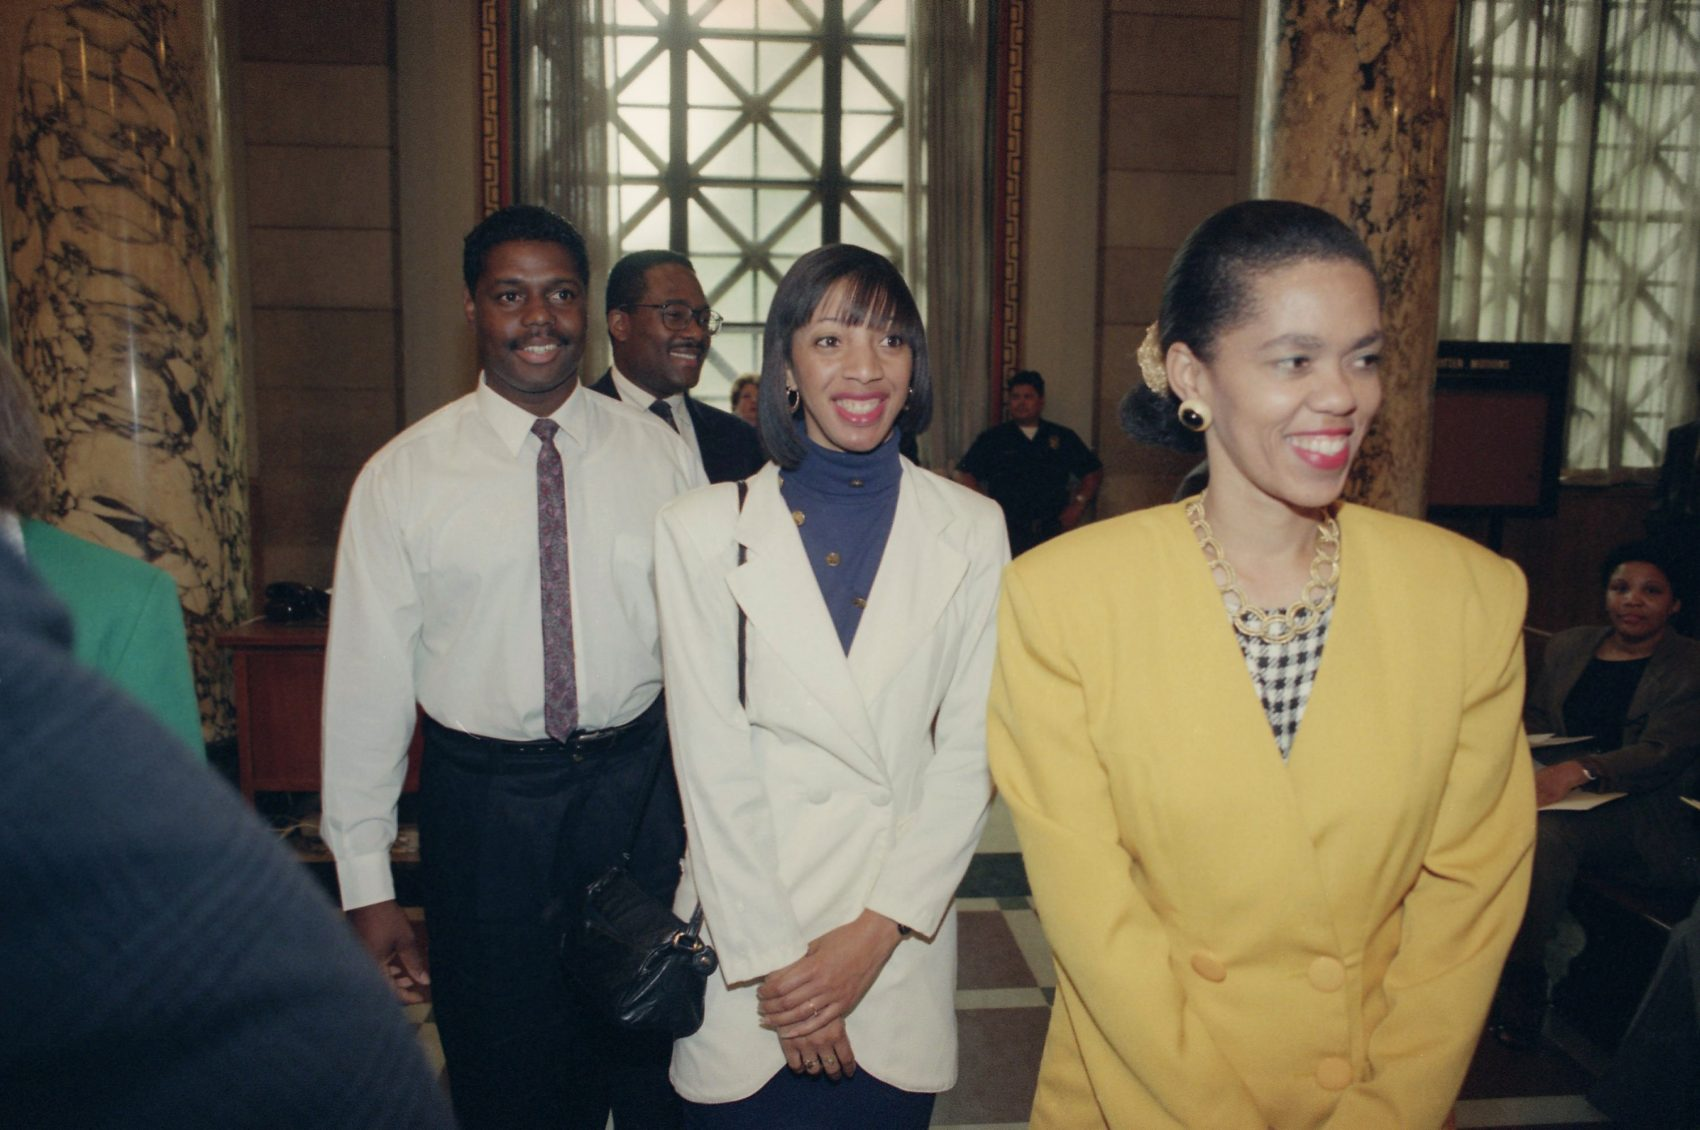 Four Los Angeles residents who rescued truck driver Reginald Denny from his rig after he was beaten during the first night of rioting were awarded a heroes' welcome at Los Angeles City Council, May 5, 1992. From right to back are Lei Yuille, Terri Barnett, Titus Murphy and Gregory Alan Williams. (Bob Galbraith/AP)